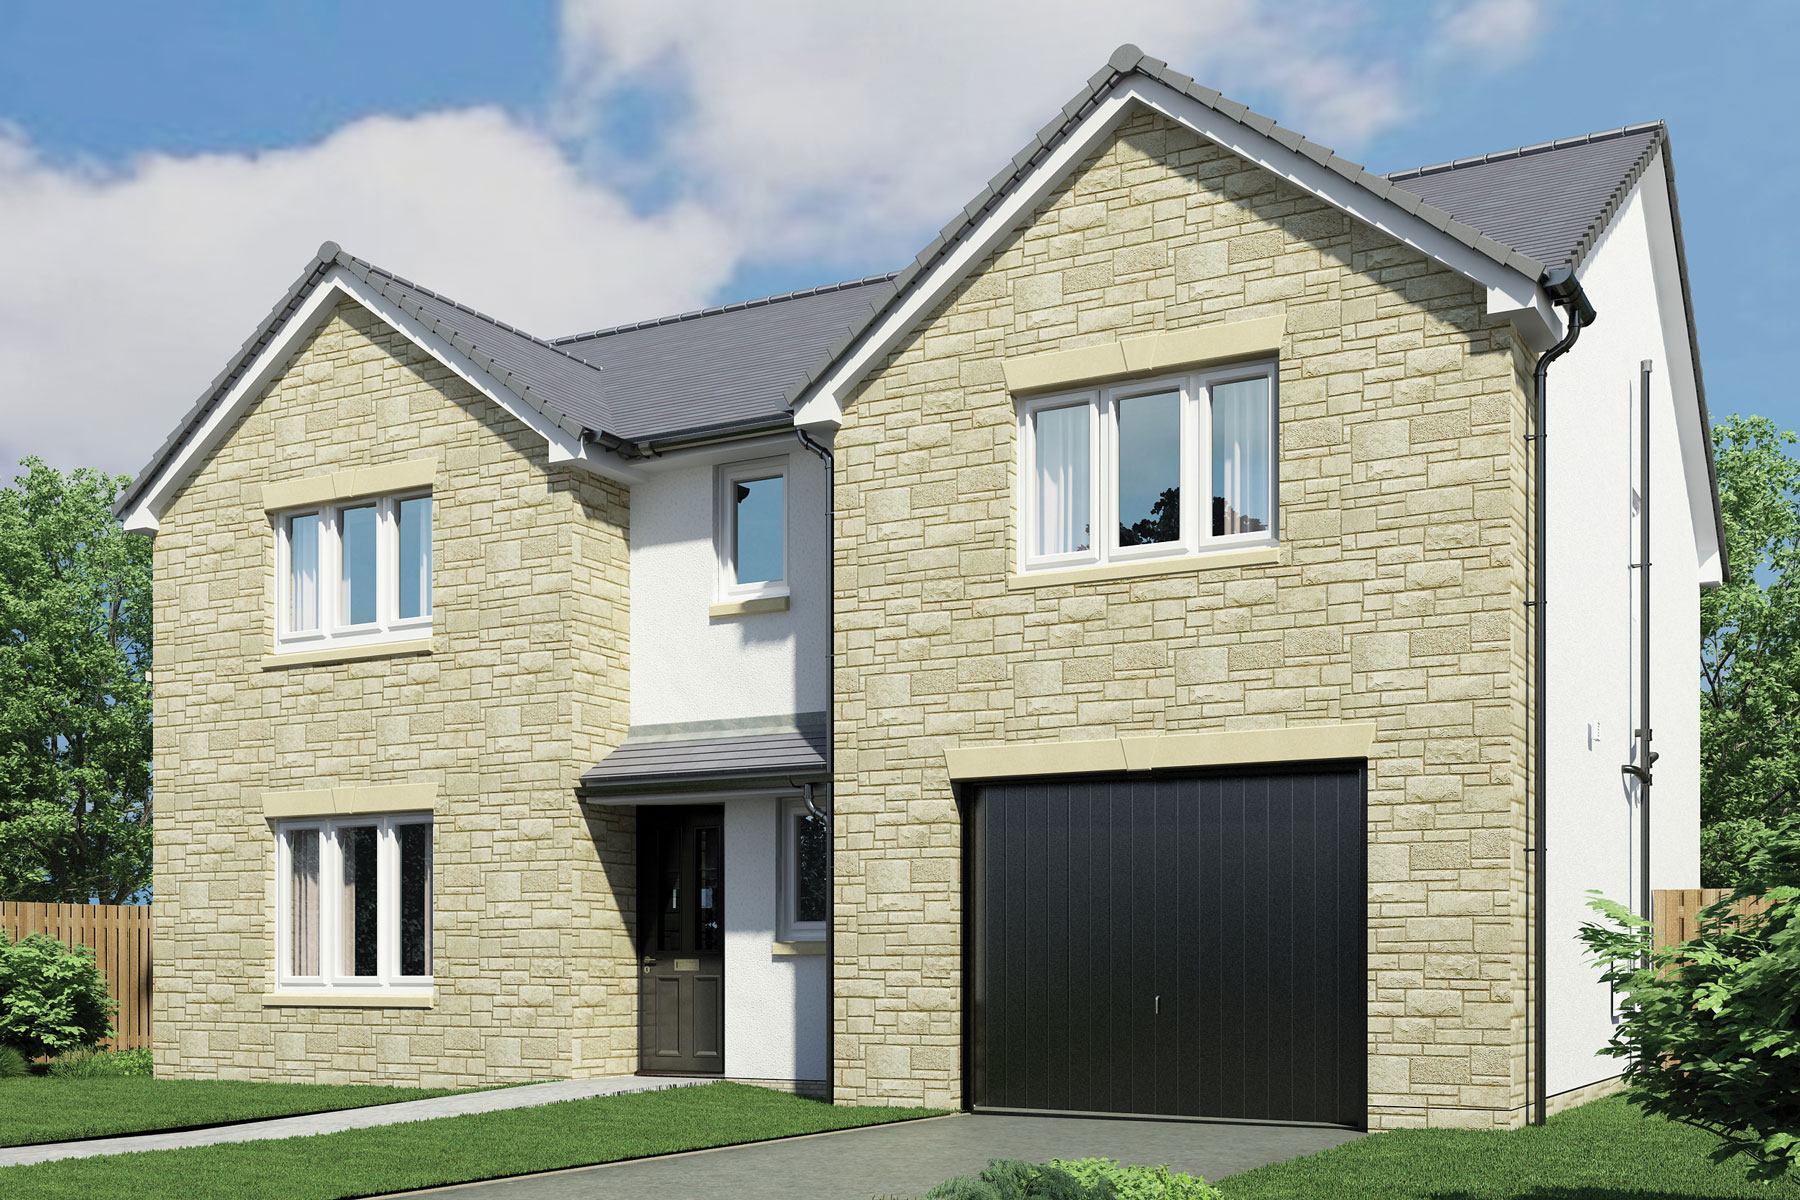 Taylor wimpey meadowlands new homes for sale in for Wallace homes